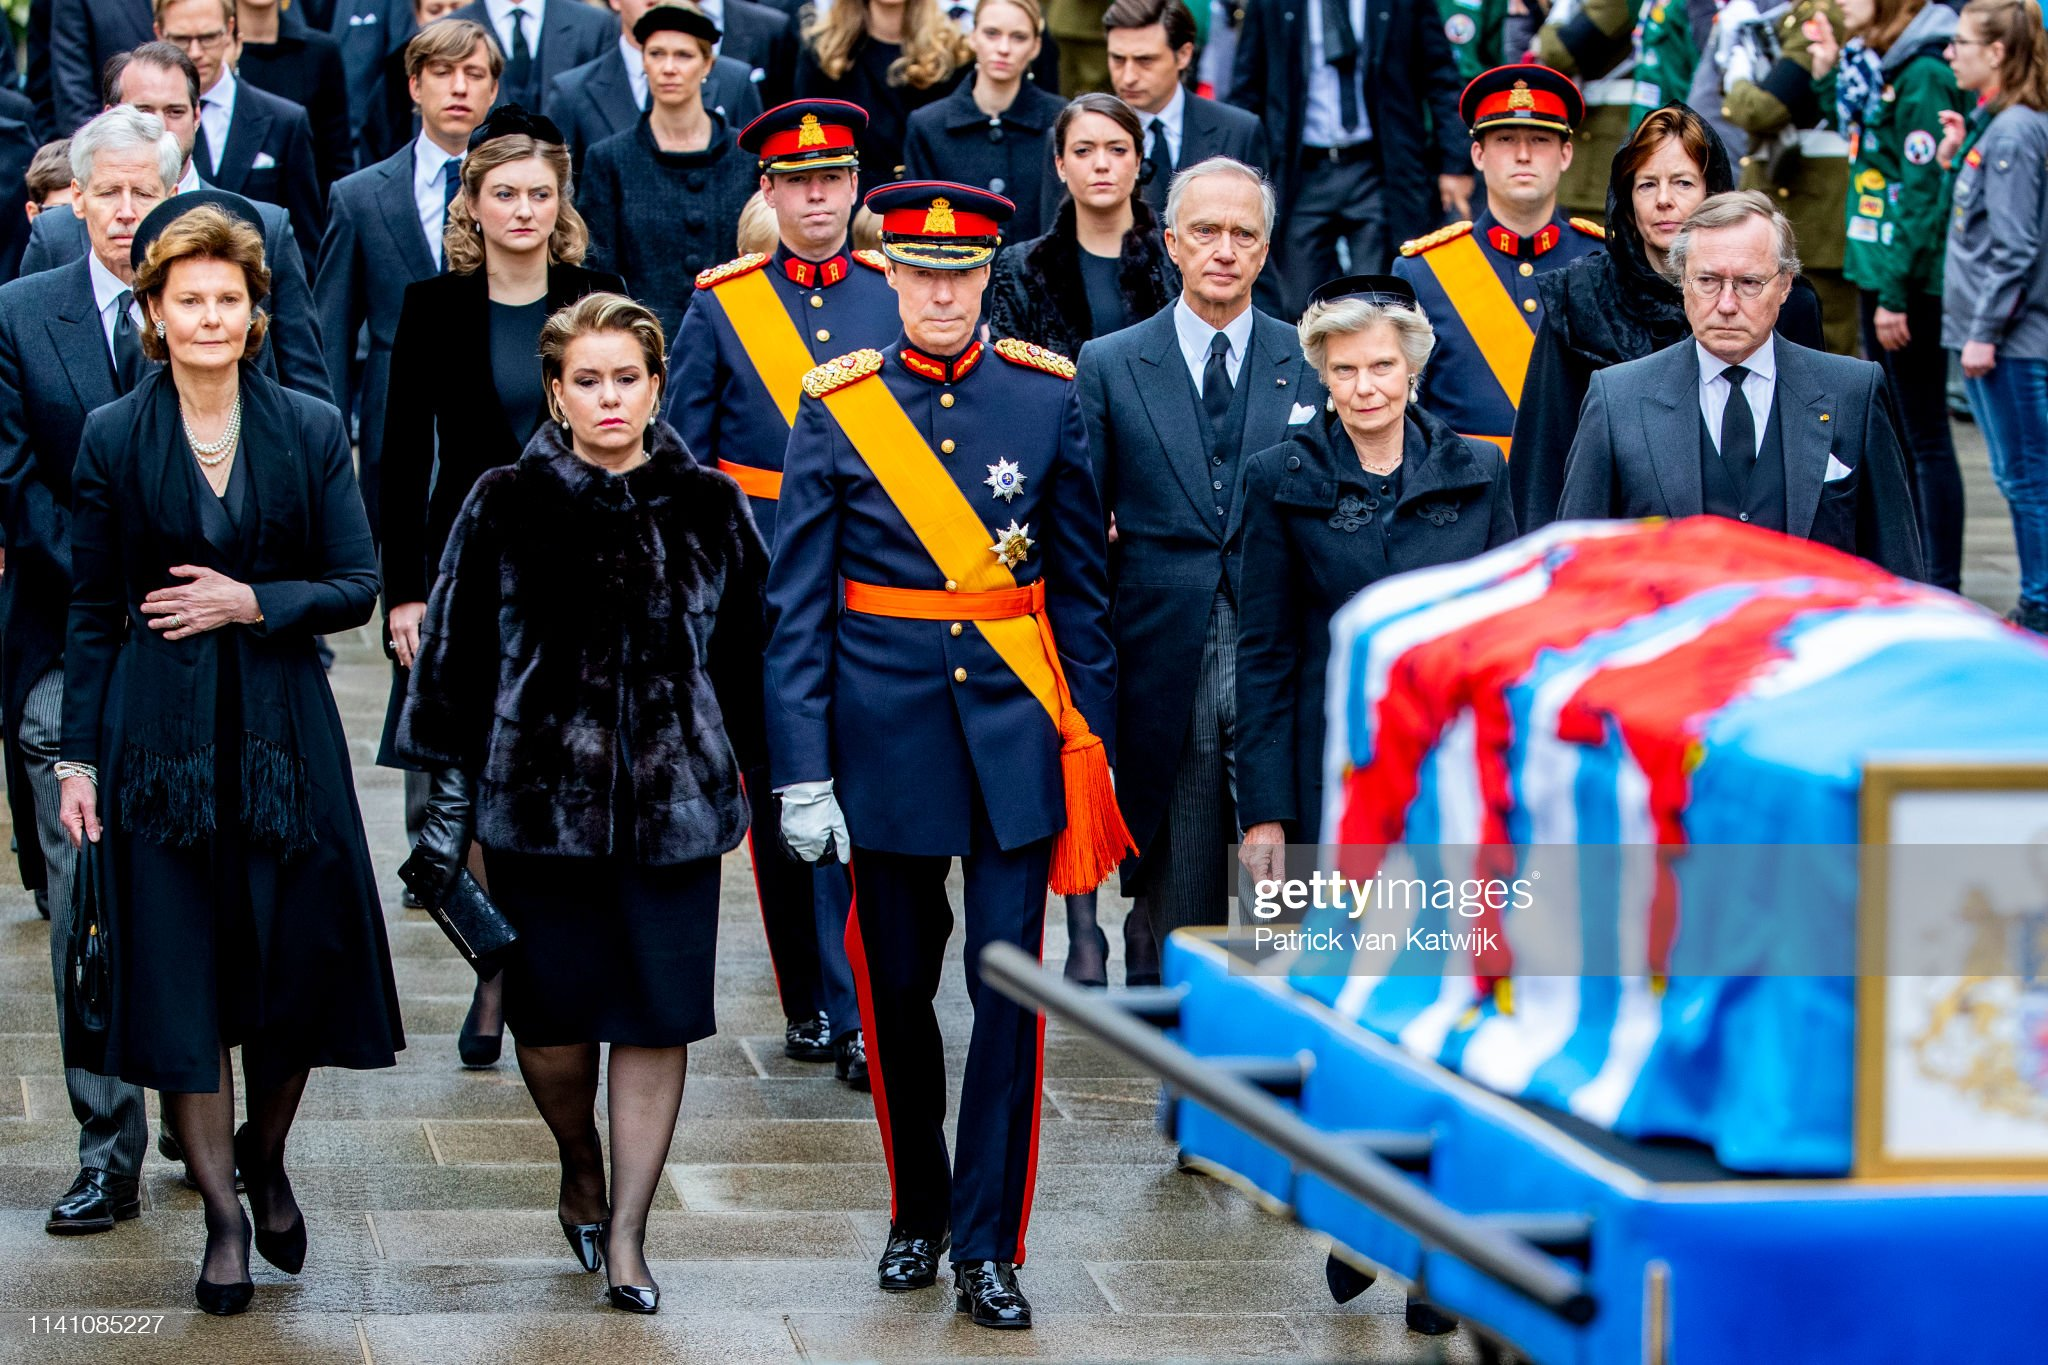 Похороны Великого Герцога Жана https://media.gettyimages.com/photos/prince-guillaume-of-luxembourg-princess-margaretha-of-luxembourg-picture-id1141085227?s=2048x2048